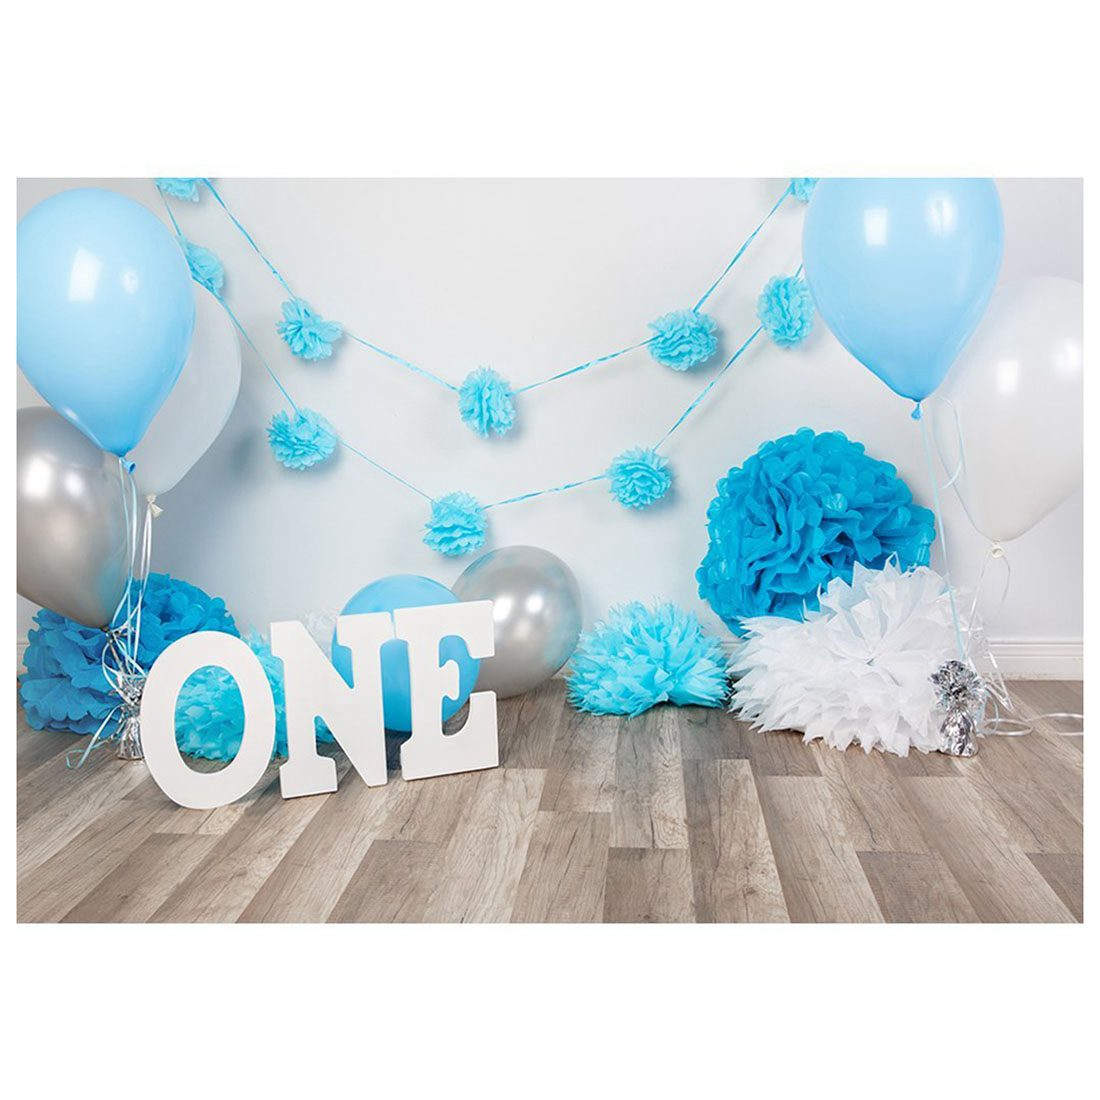 7x5ft Photography Backdrops baby boys 1st Birthday Blue balloons flowers party banner studio booth background photocall 3 5m vinyl custom photography backdrops prop nature theme studio background j 066